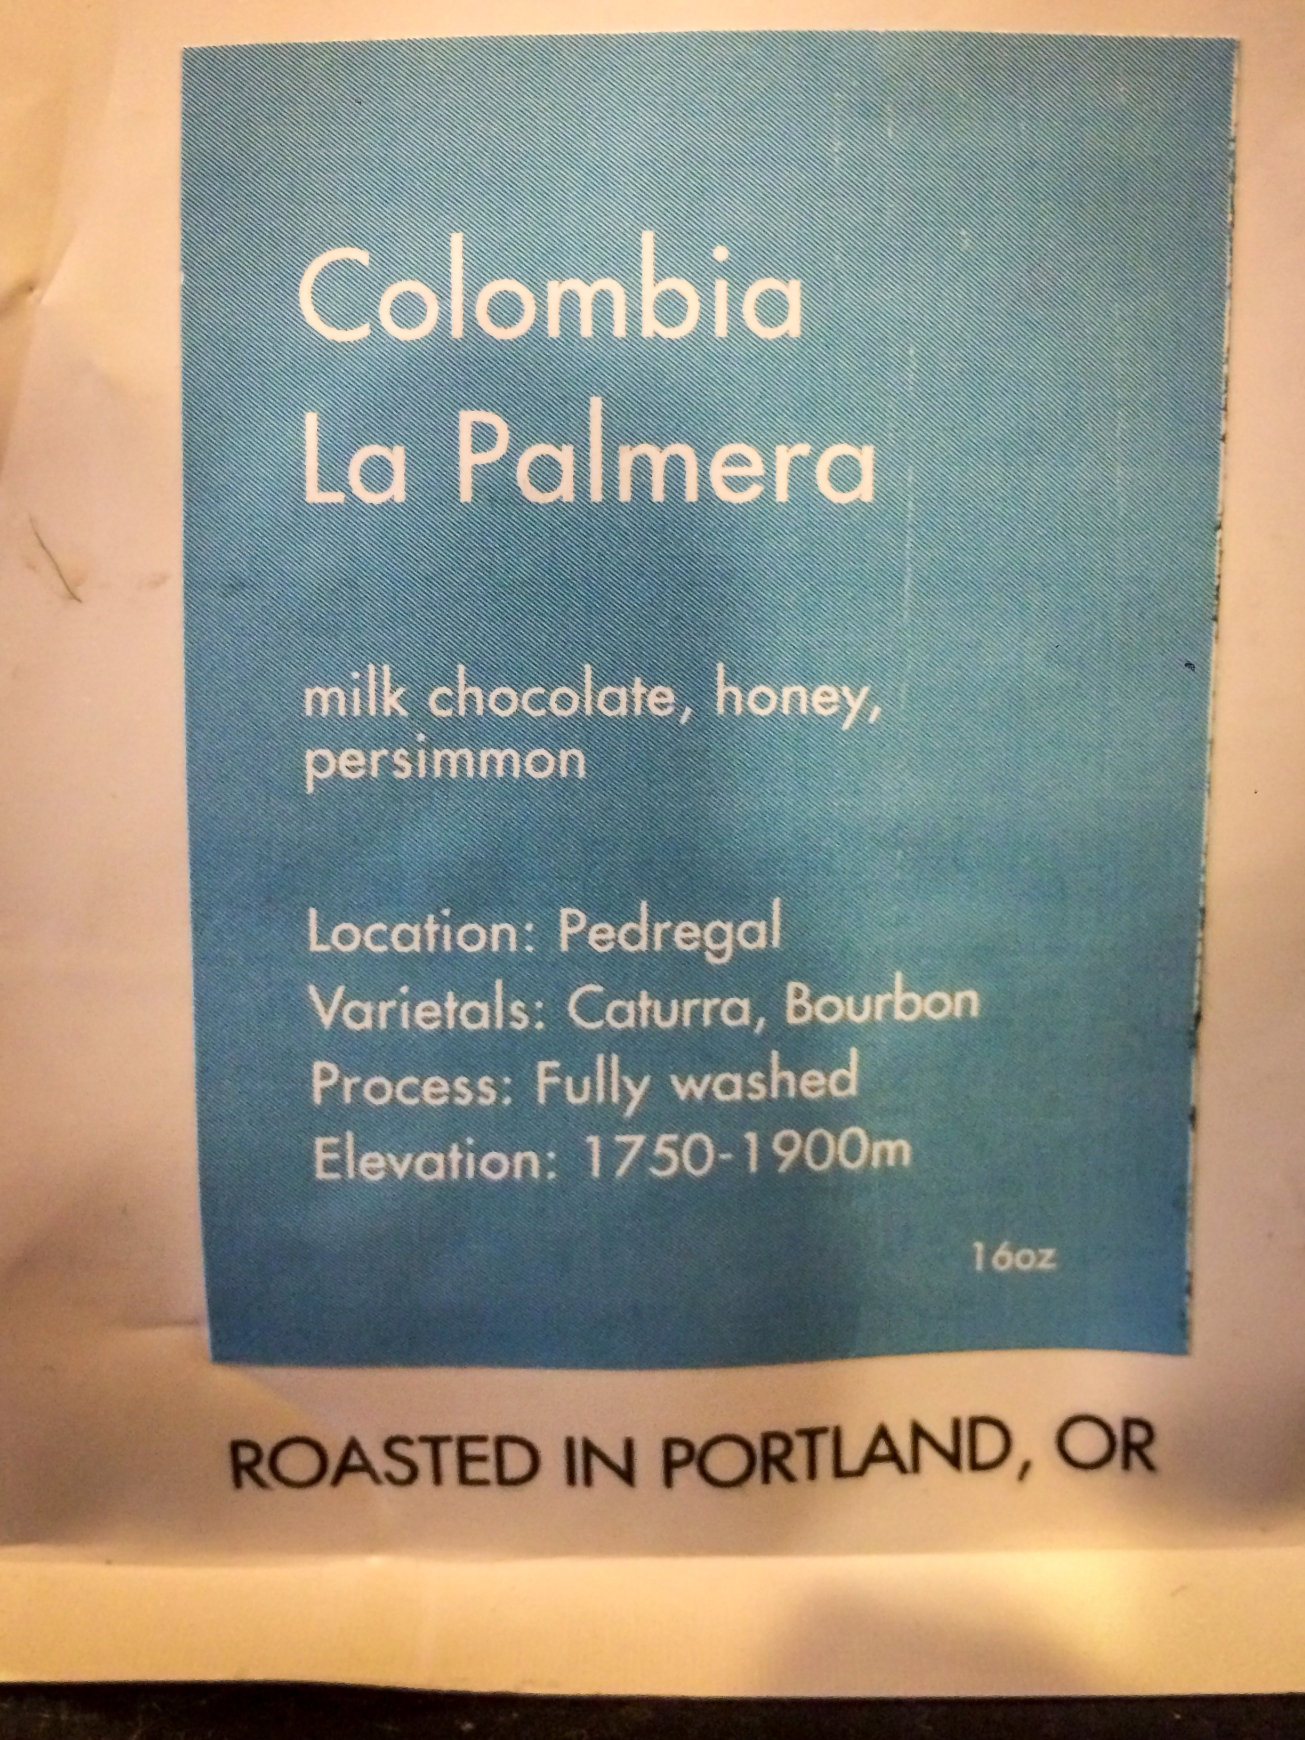 Heart Roasters Colombia La Palmera